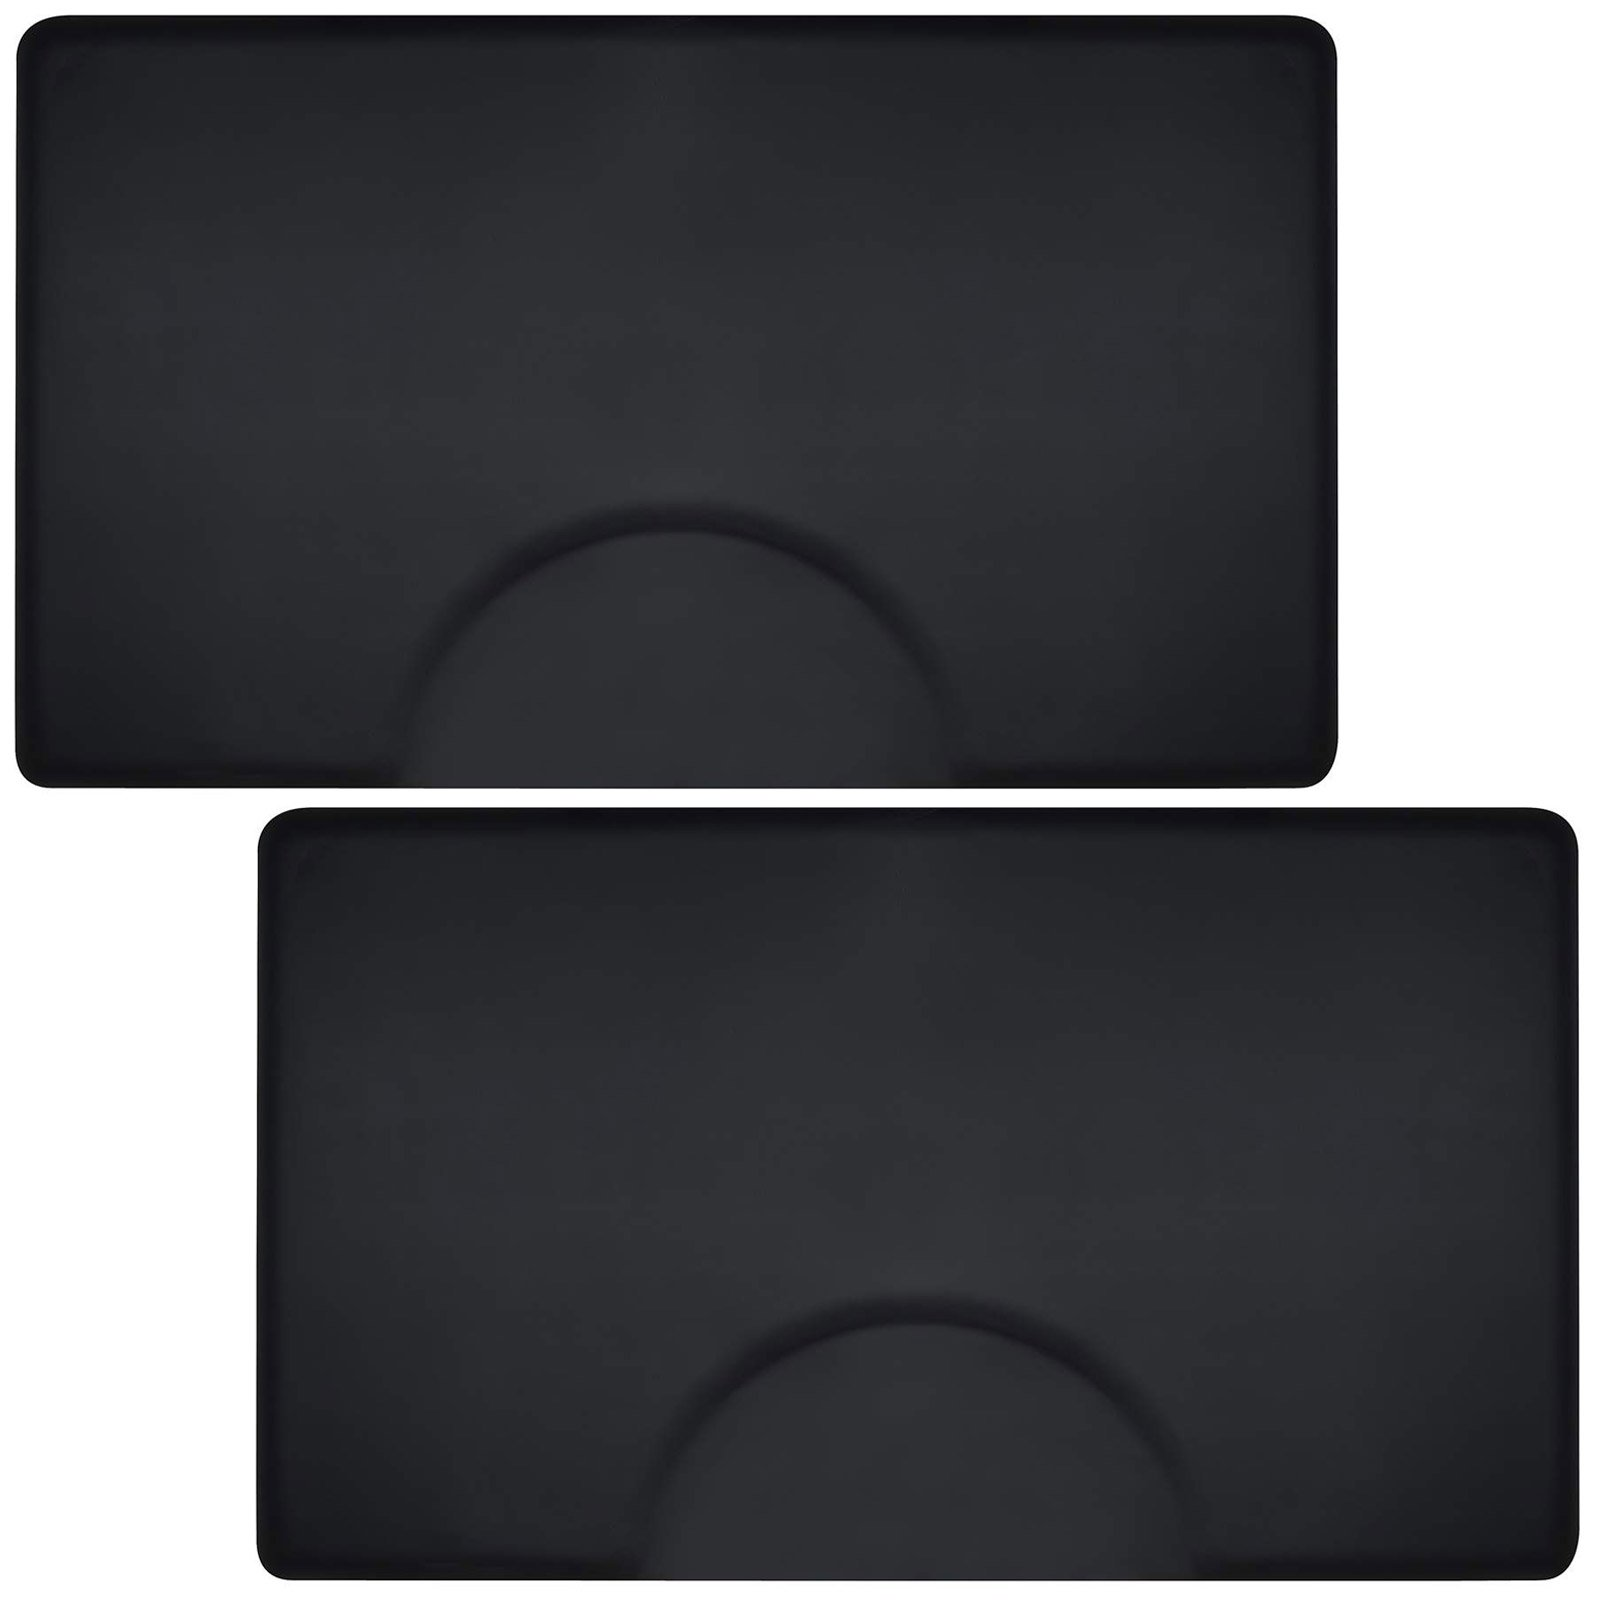 Saloniture 3 ft. x 5 ft. Salon & Barber Shop Chair Anti-Fatigue Floor Mat - Black Rectangle - 1/2 in. Thick - 2 Pack by Saloniture